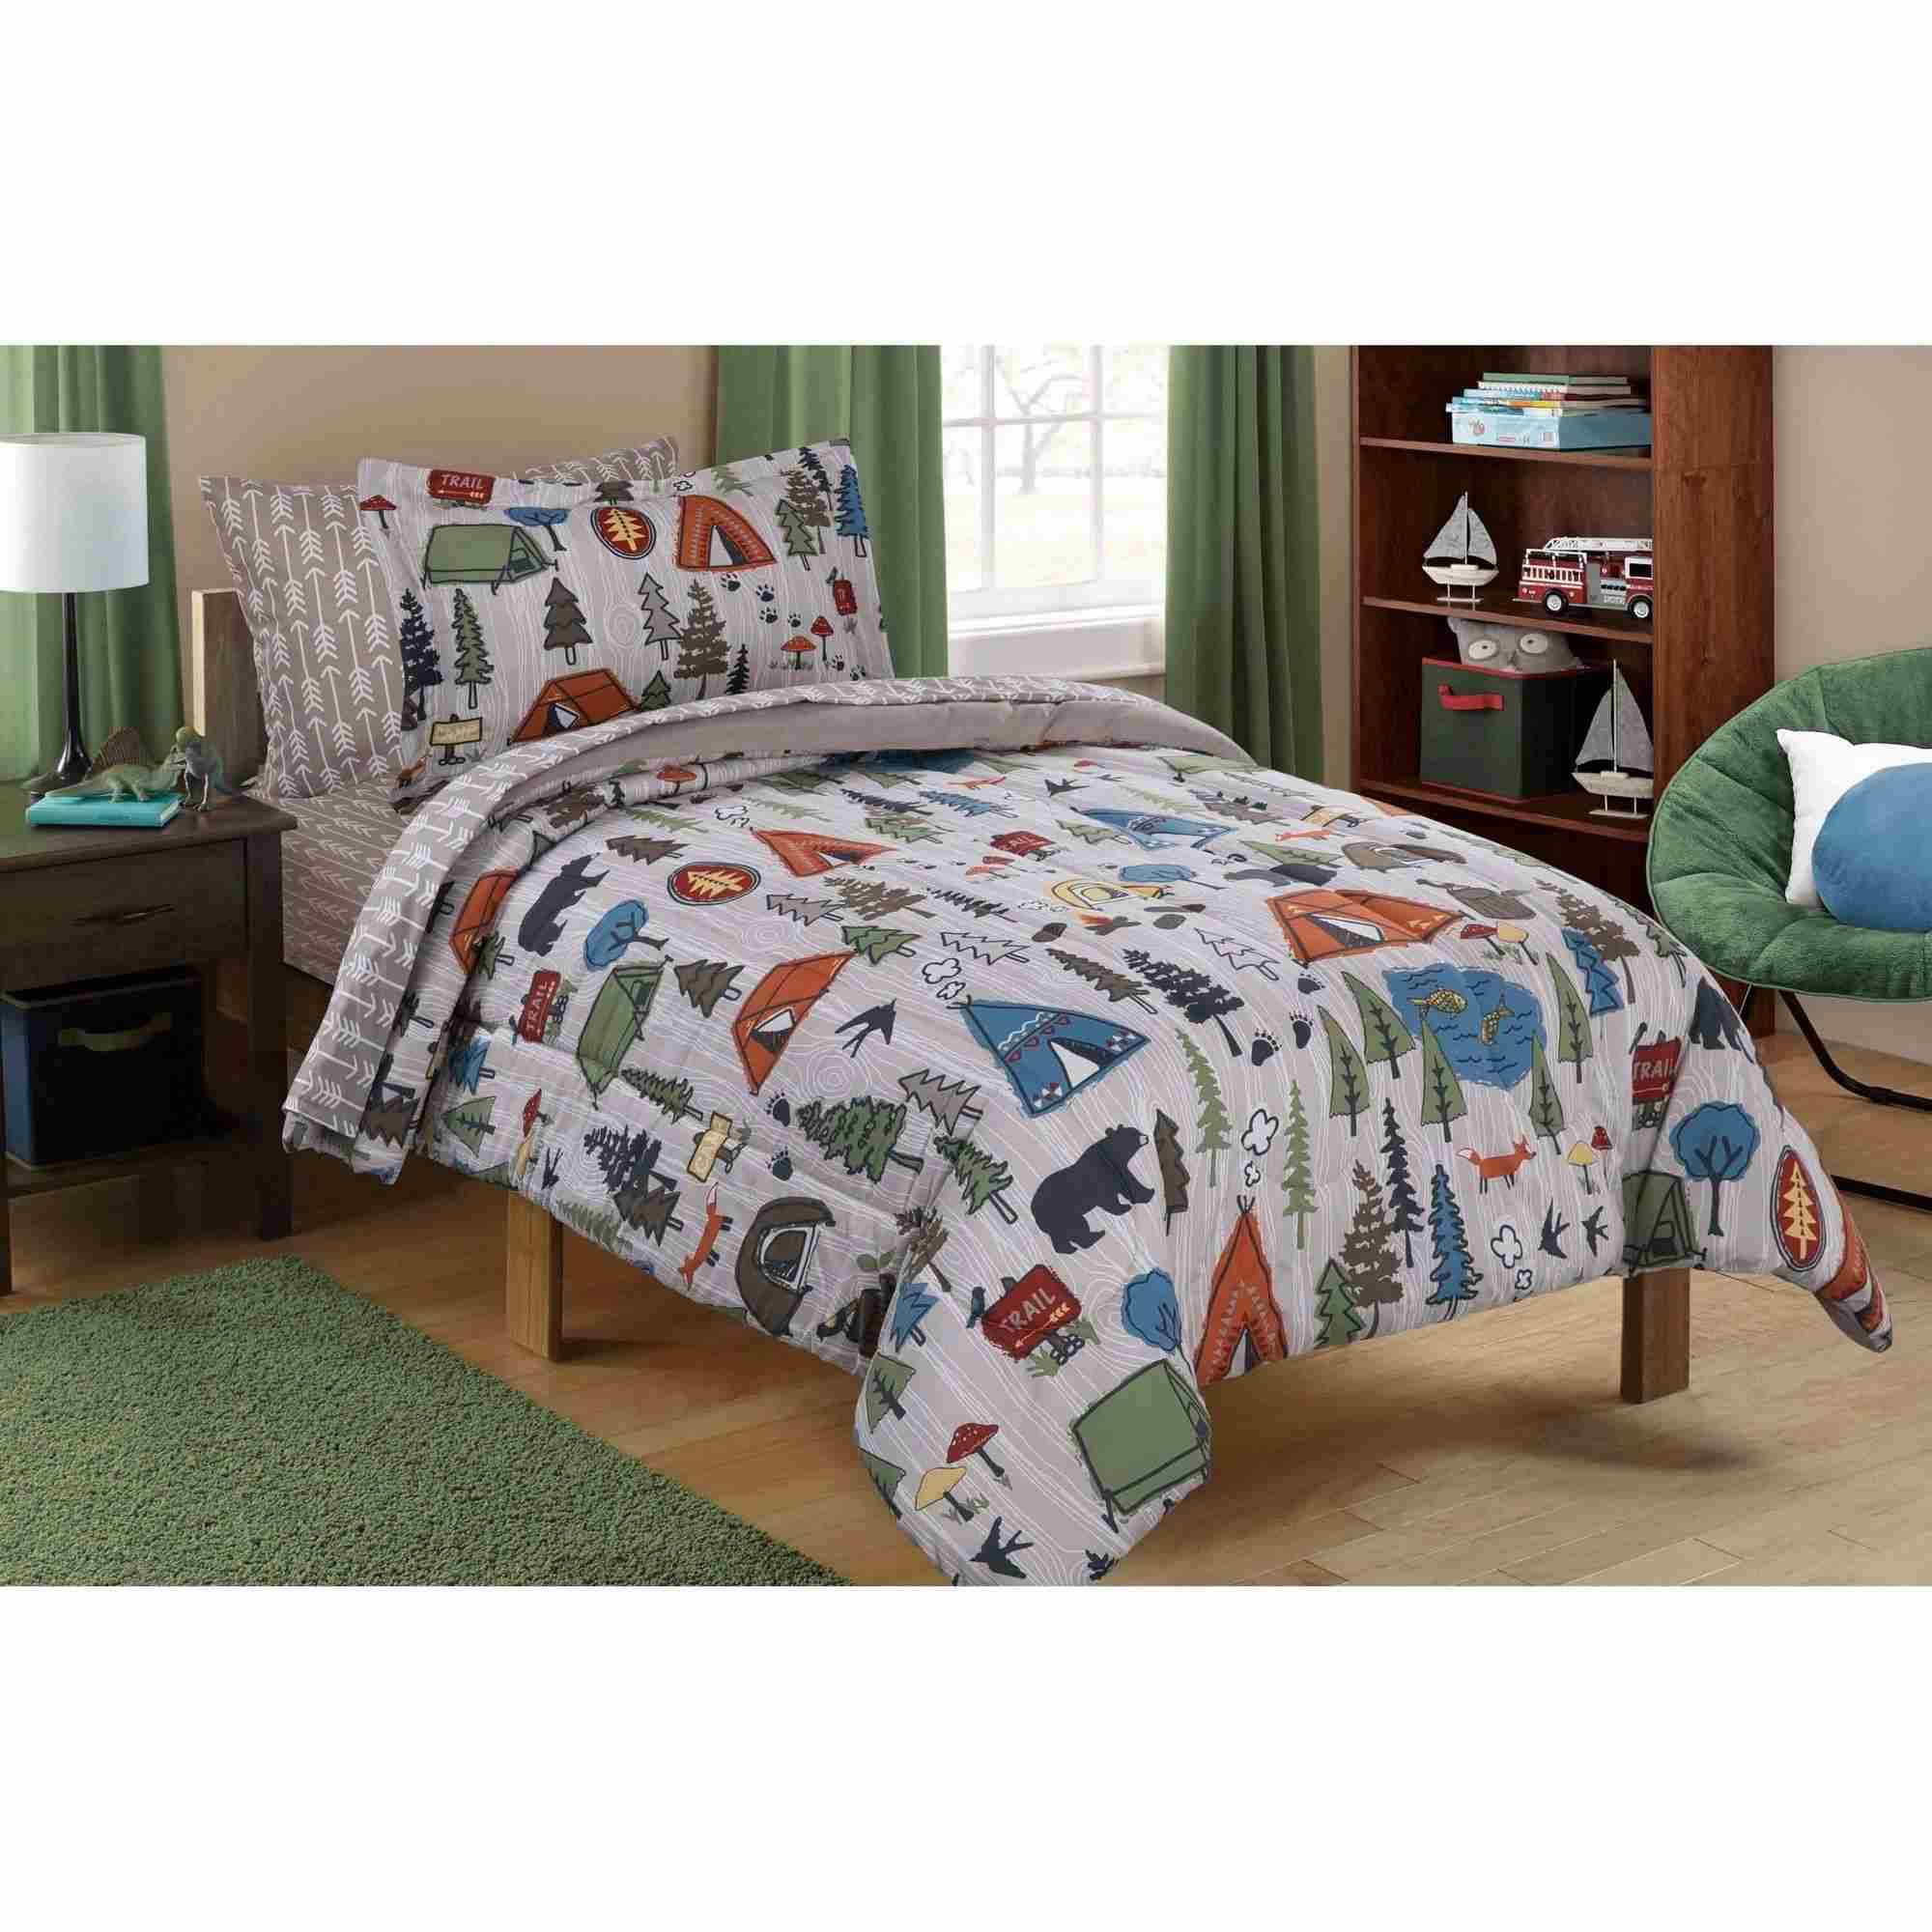 Mainstays Kids Camping Bed in a Bag Bedding Set